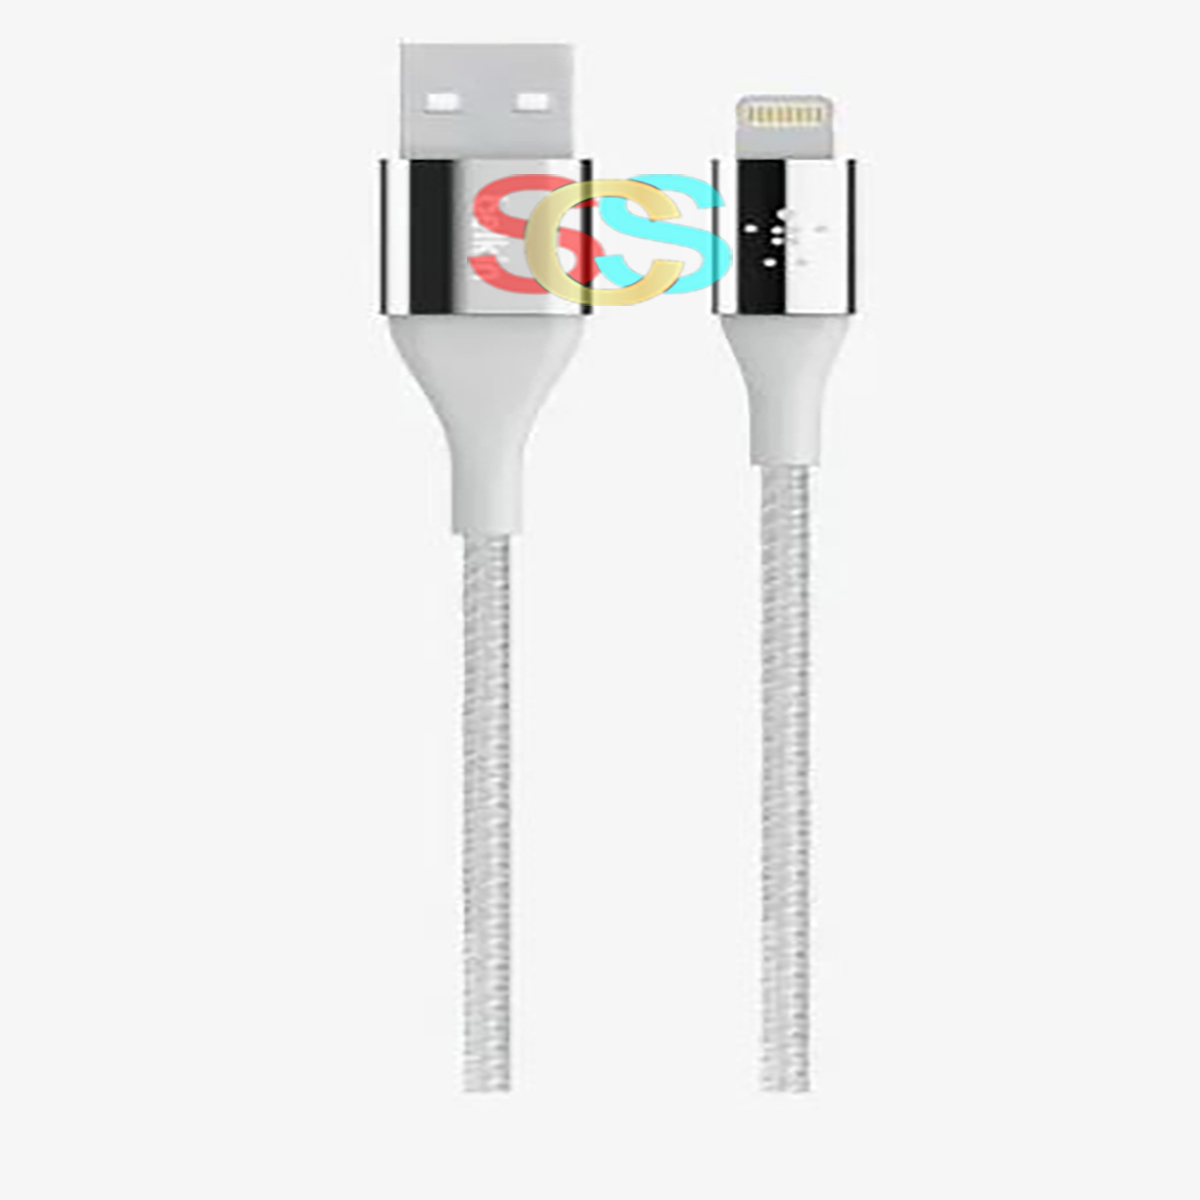 Belkin Lightning Male to USB Male, 1.2 Meter, Silver Charging Cable